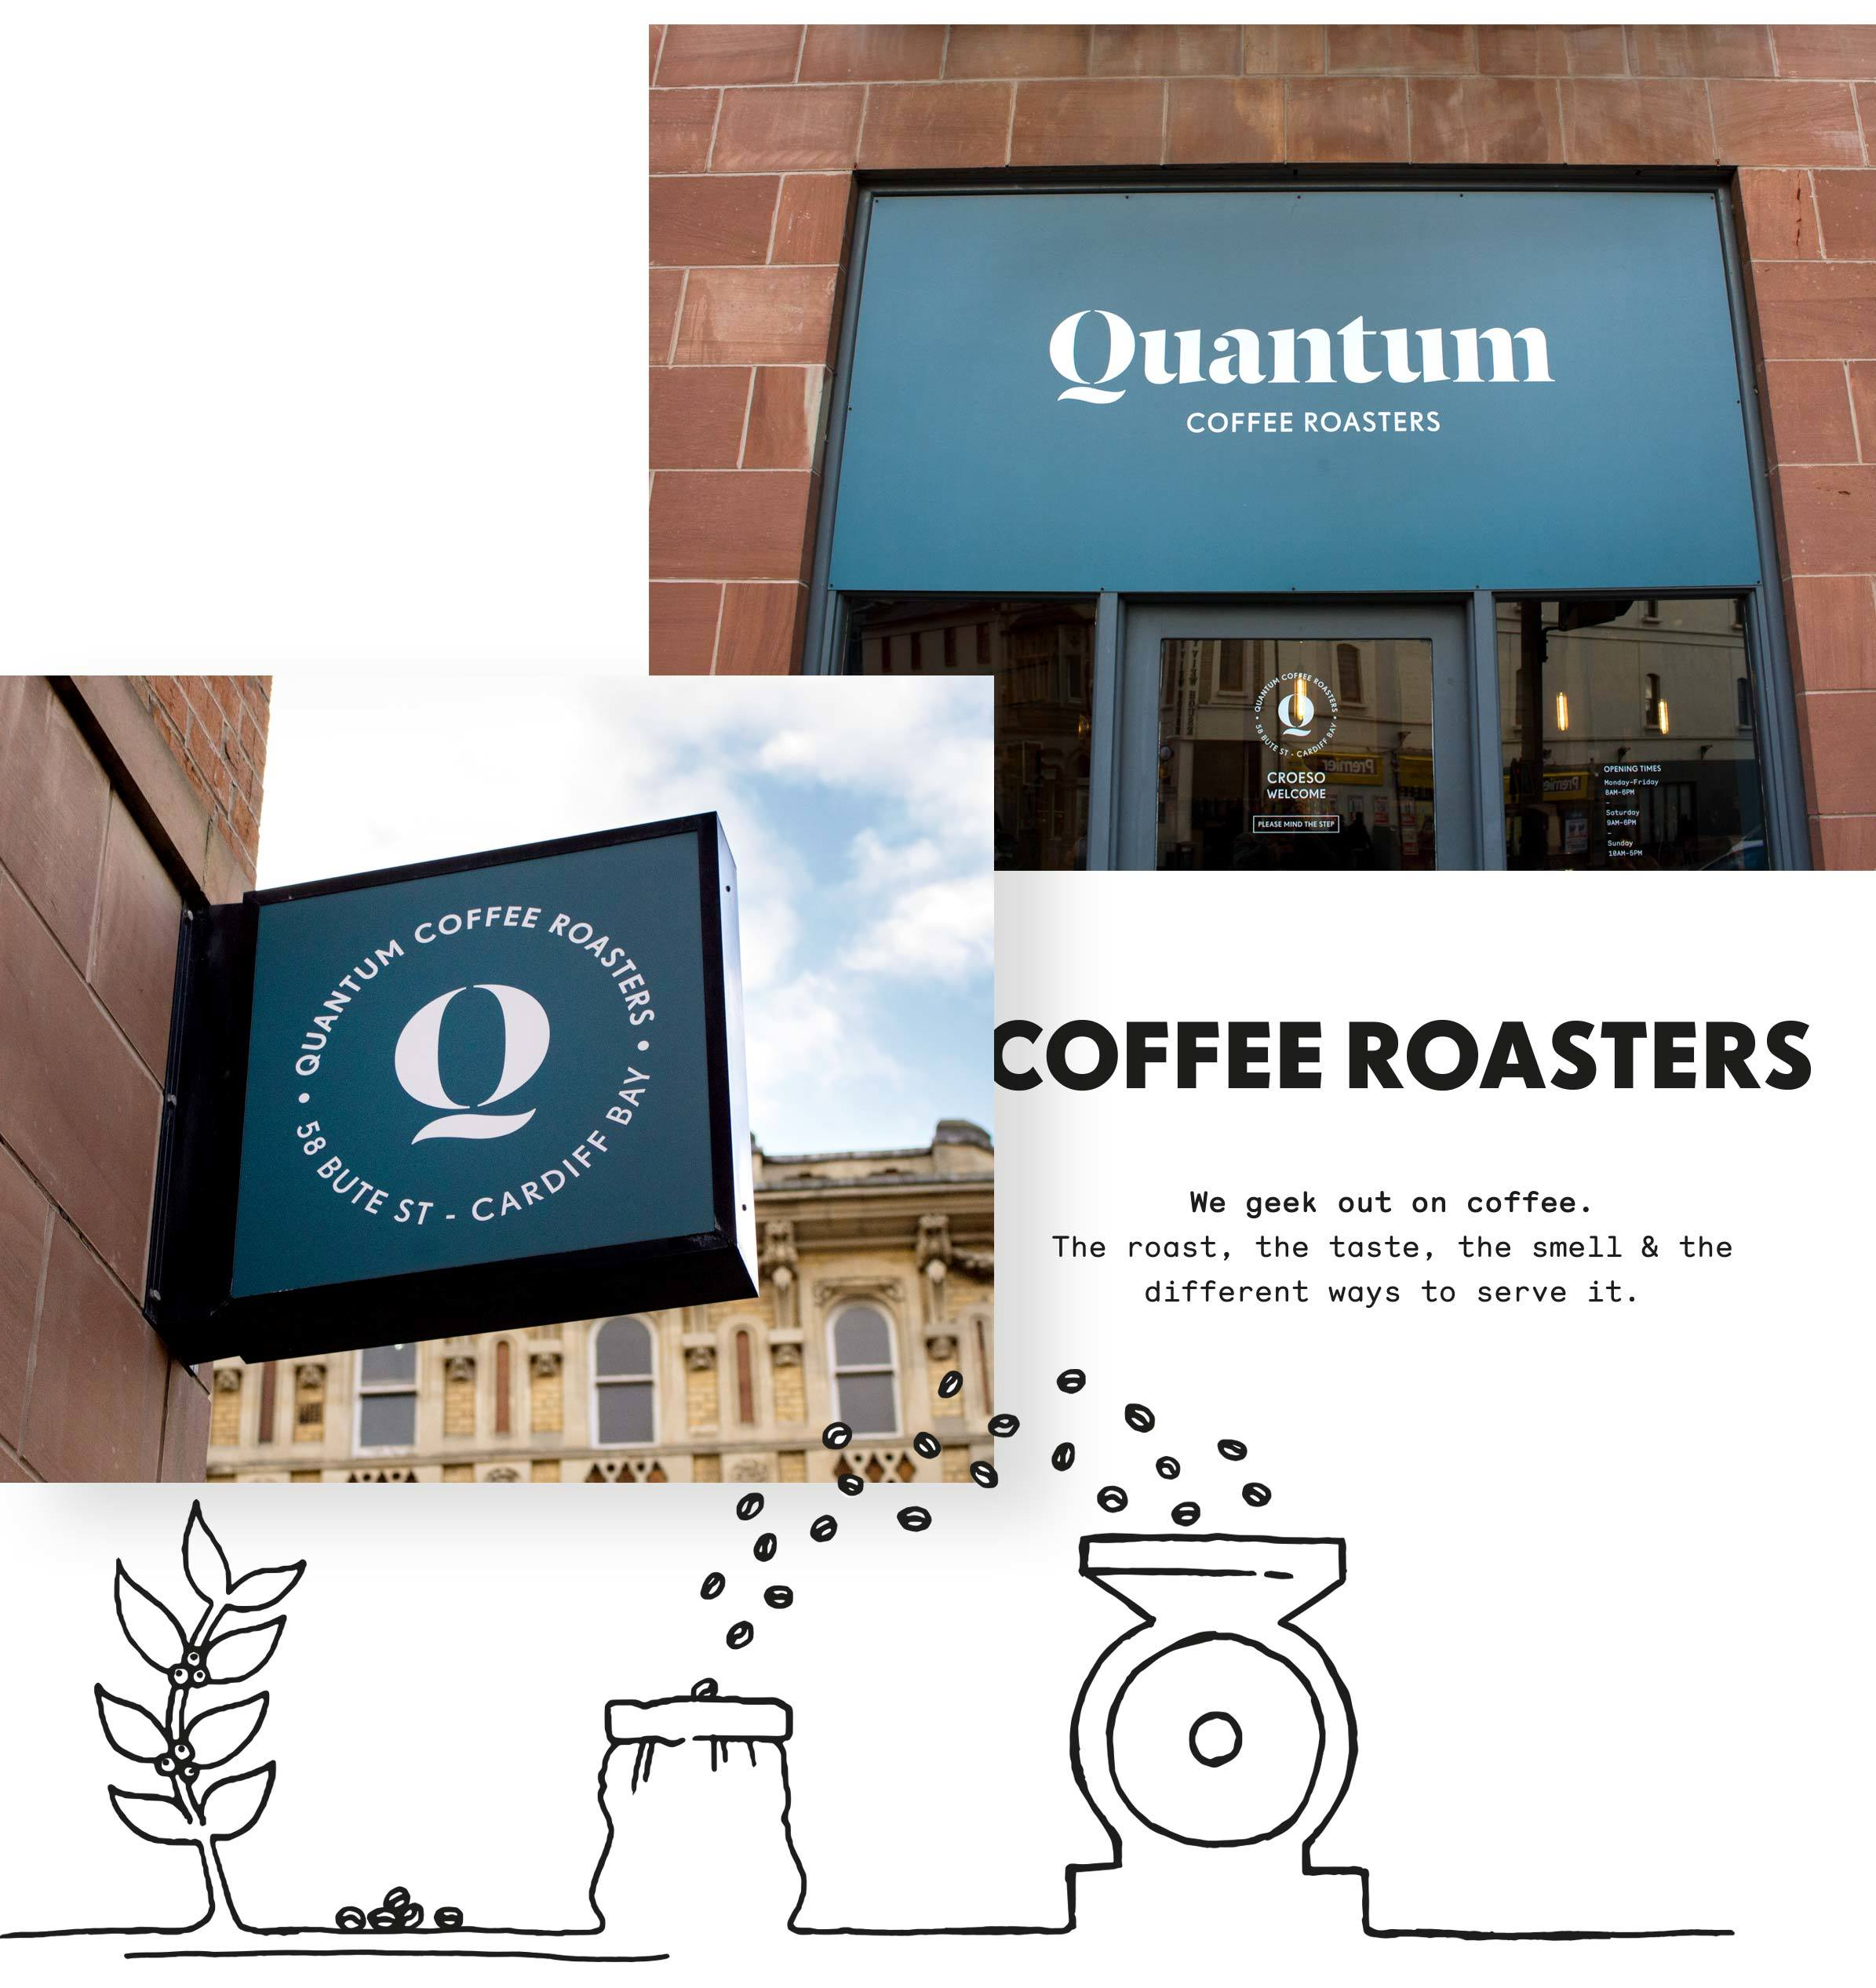 Example of new Quantum coffee roasters store front signage